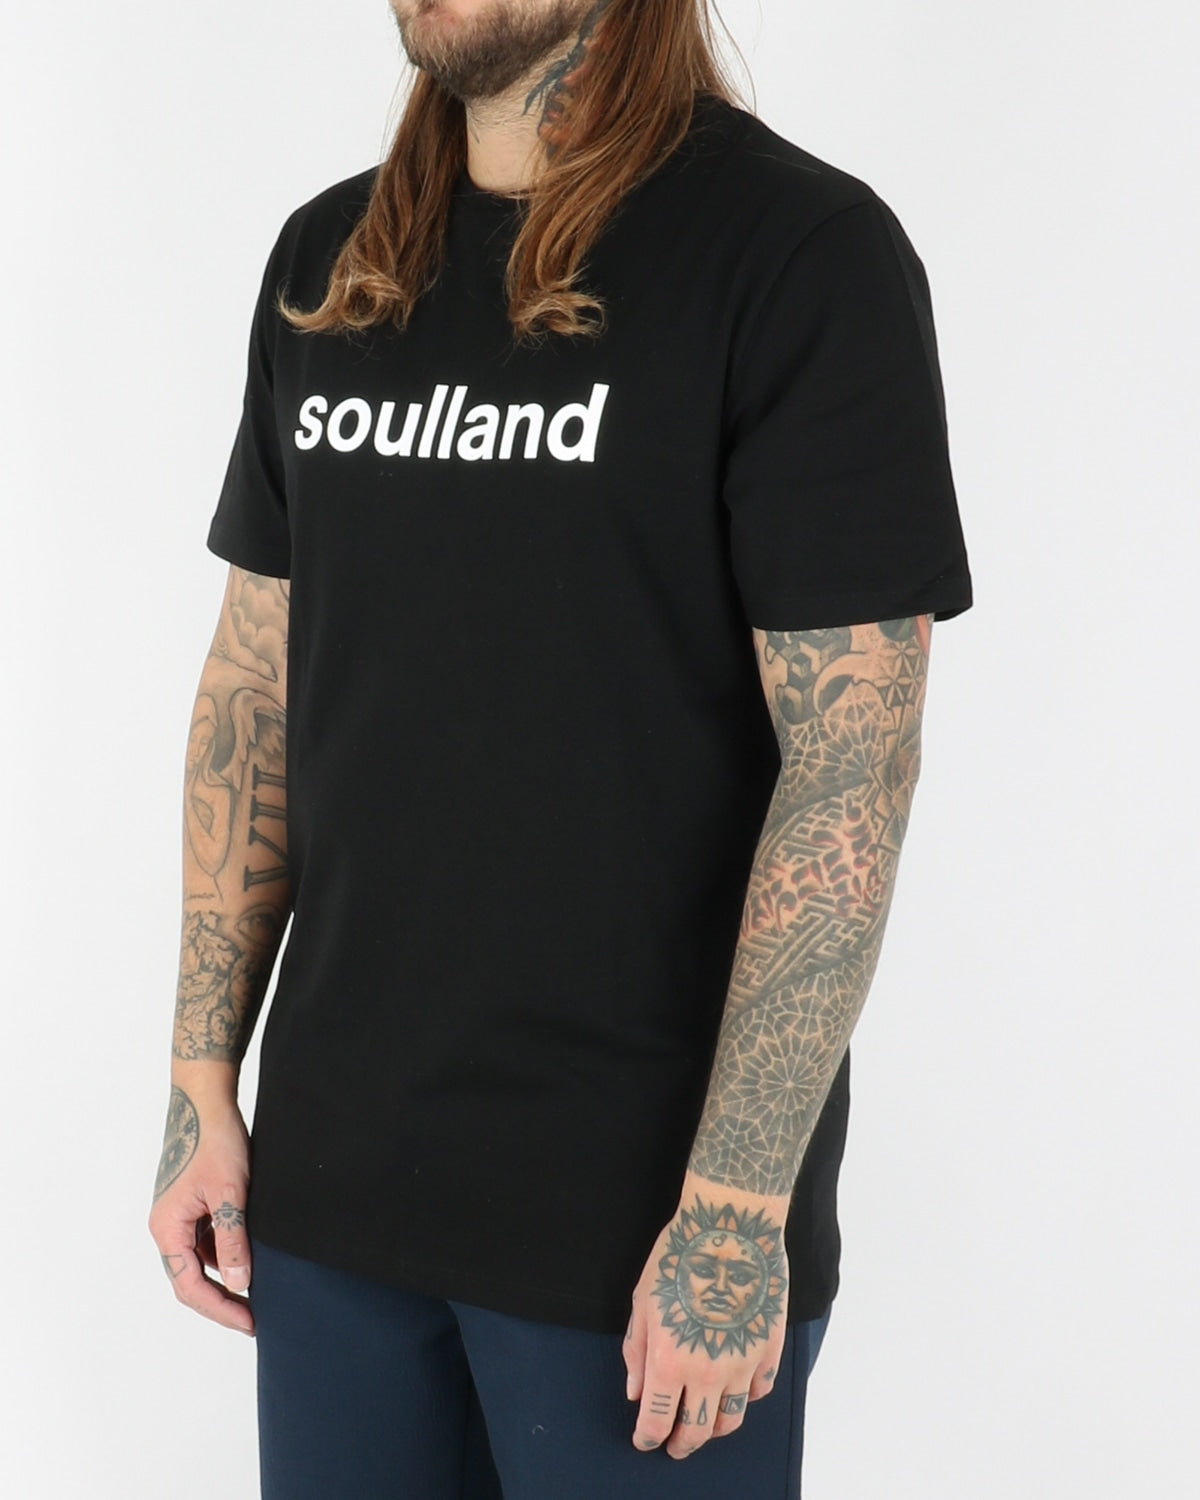 soulland_chuck t-shirt_black_2_3